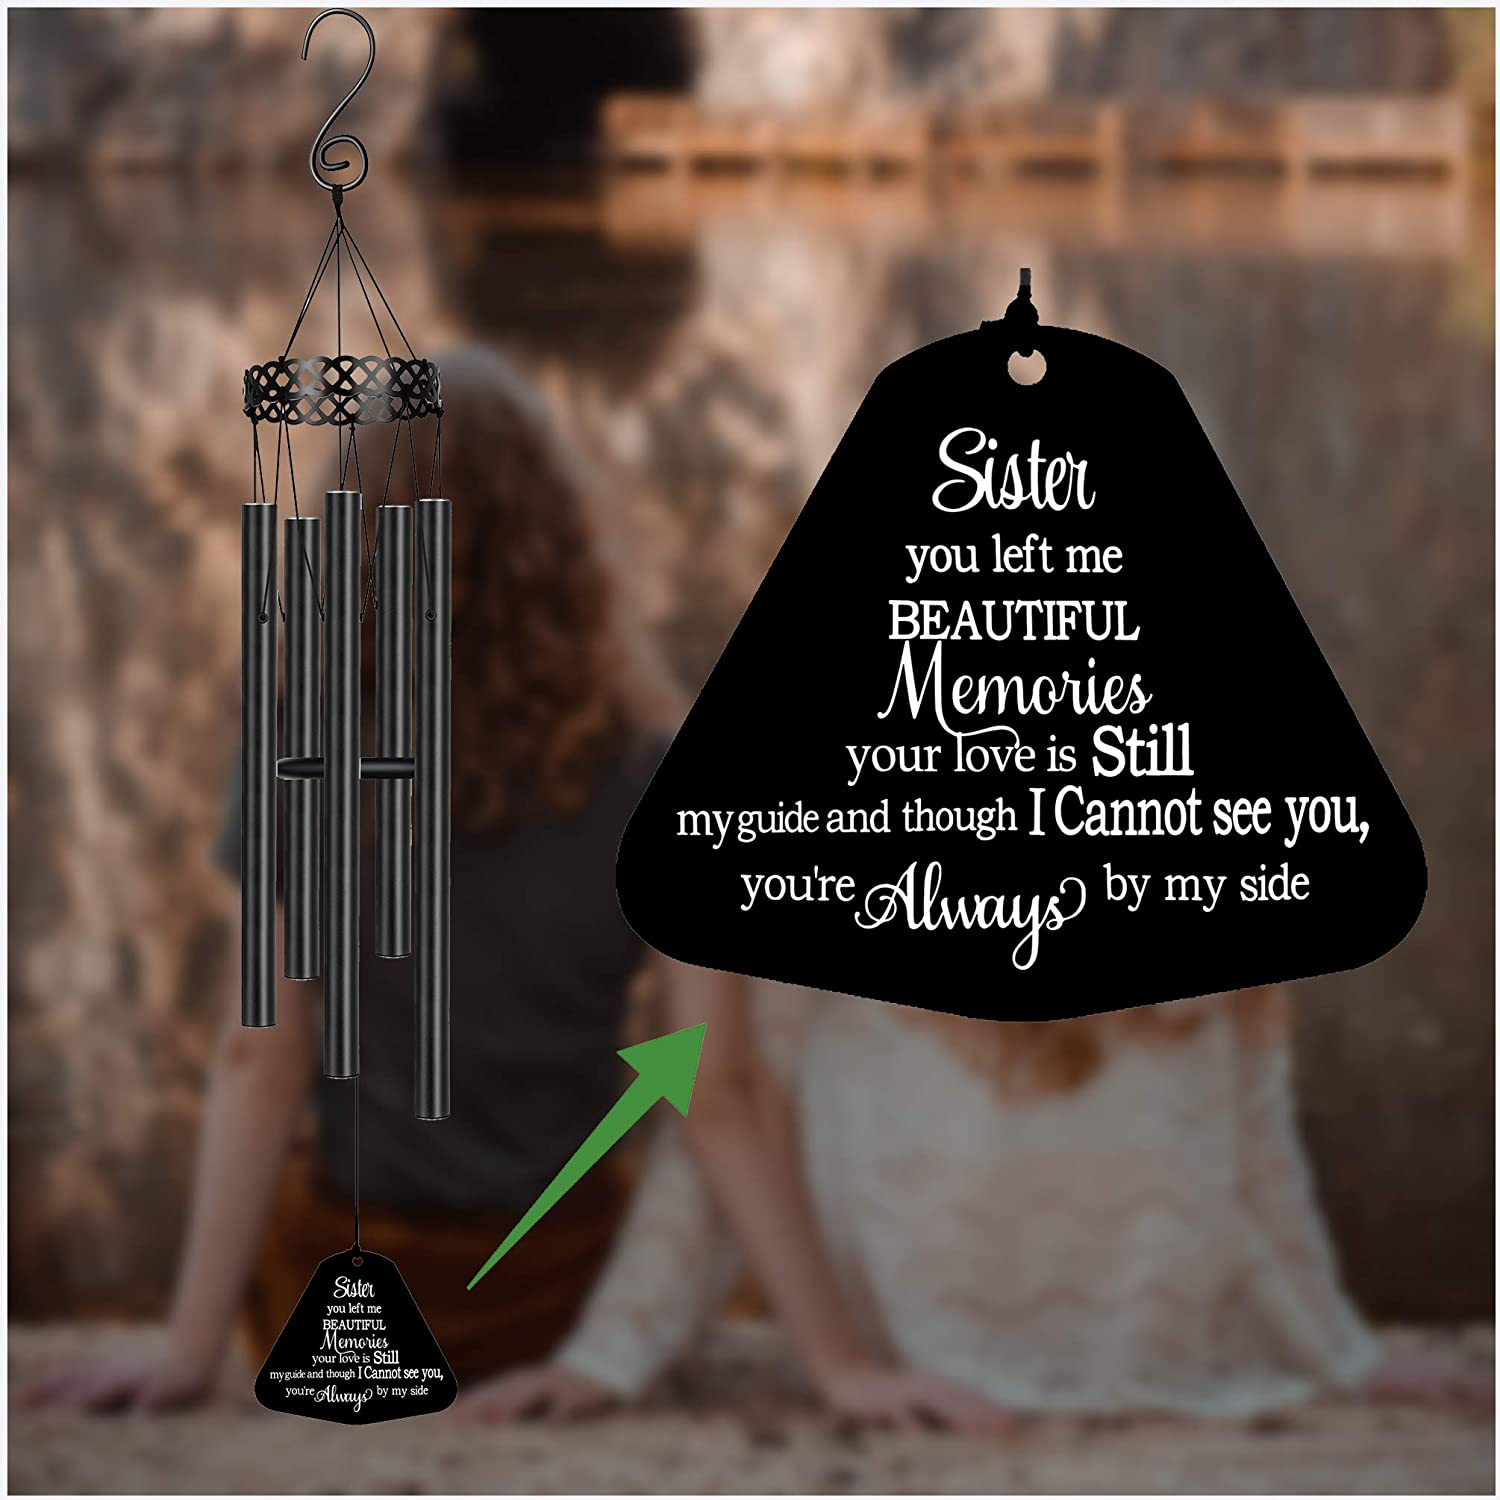 Memorial Wind Chimes for Loss of Sister Prime Sympathy Gifts Loss of Loved One Rememberance Large Angel Windchimes Outside Garden Sister You Left Me Beautiful Memories